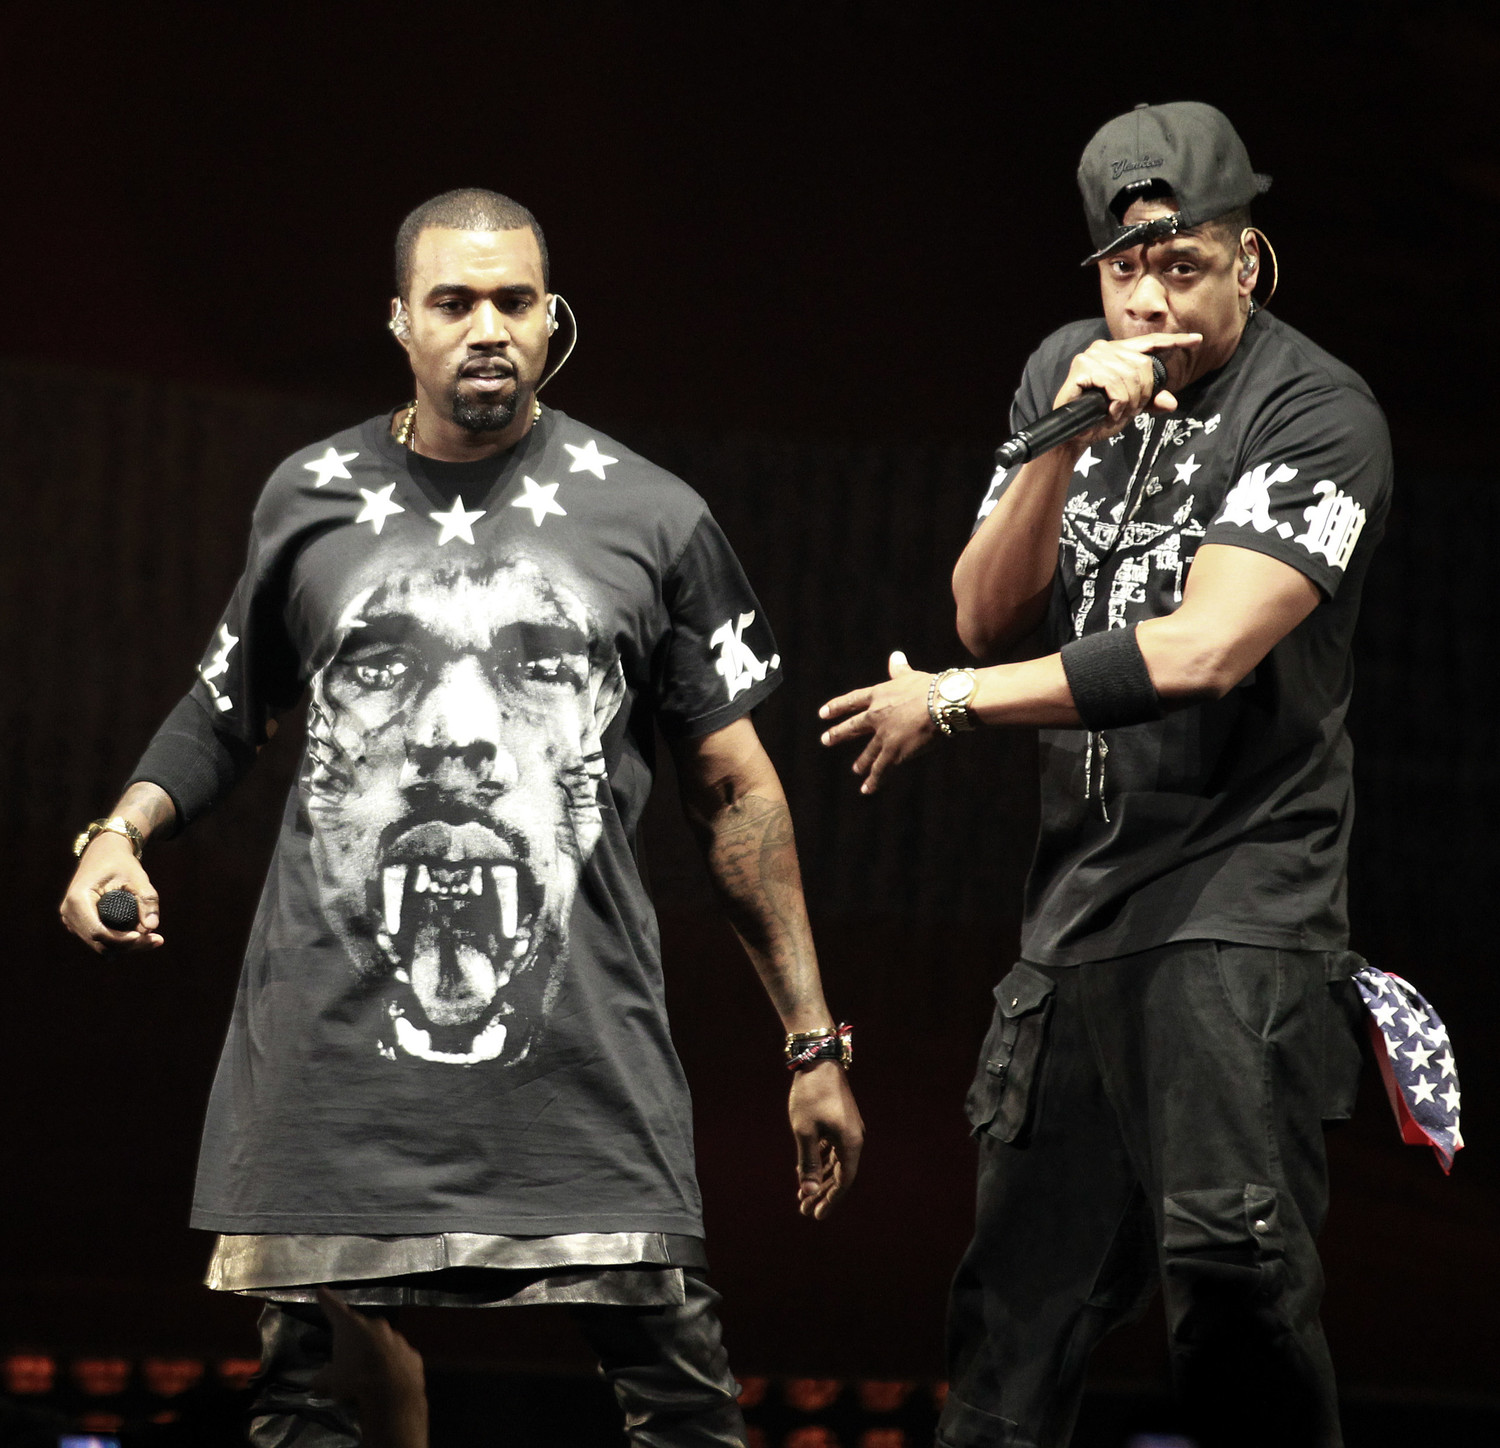 Jay Z And Kanye West Too Cultured For Rap The Airship